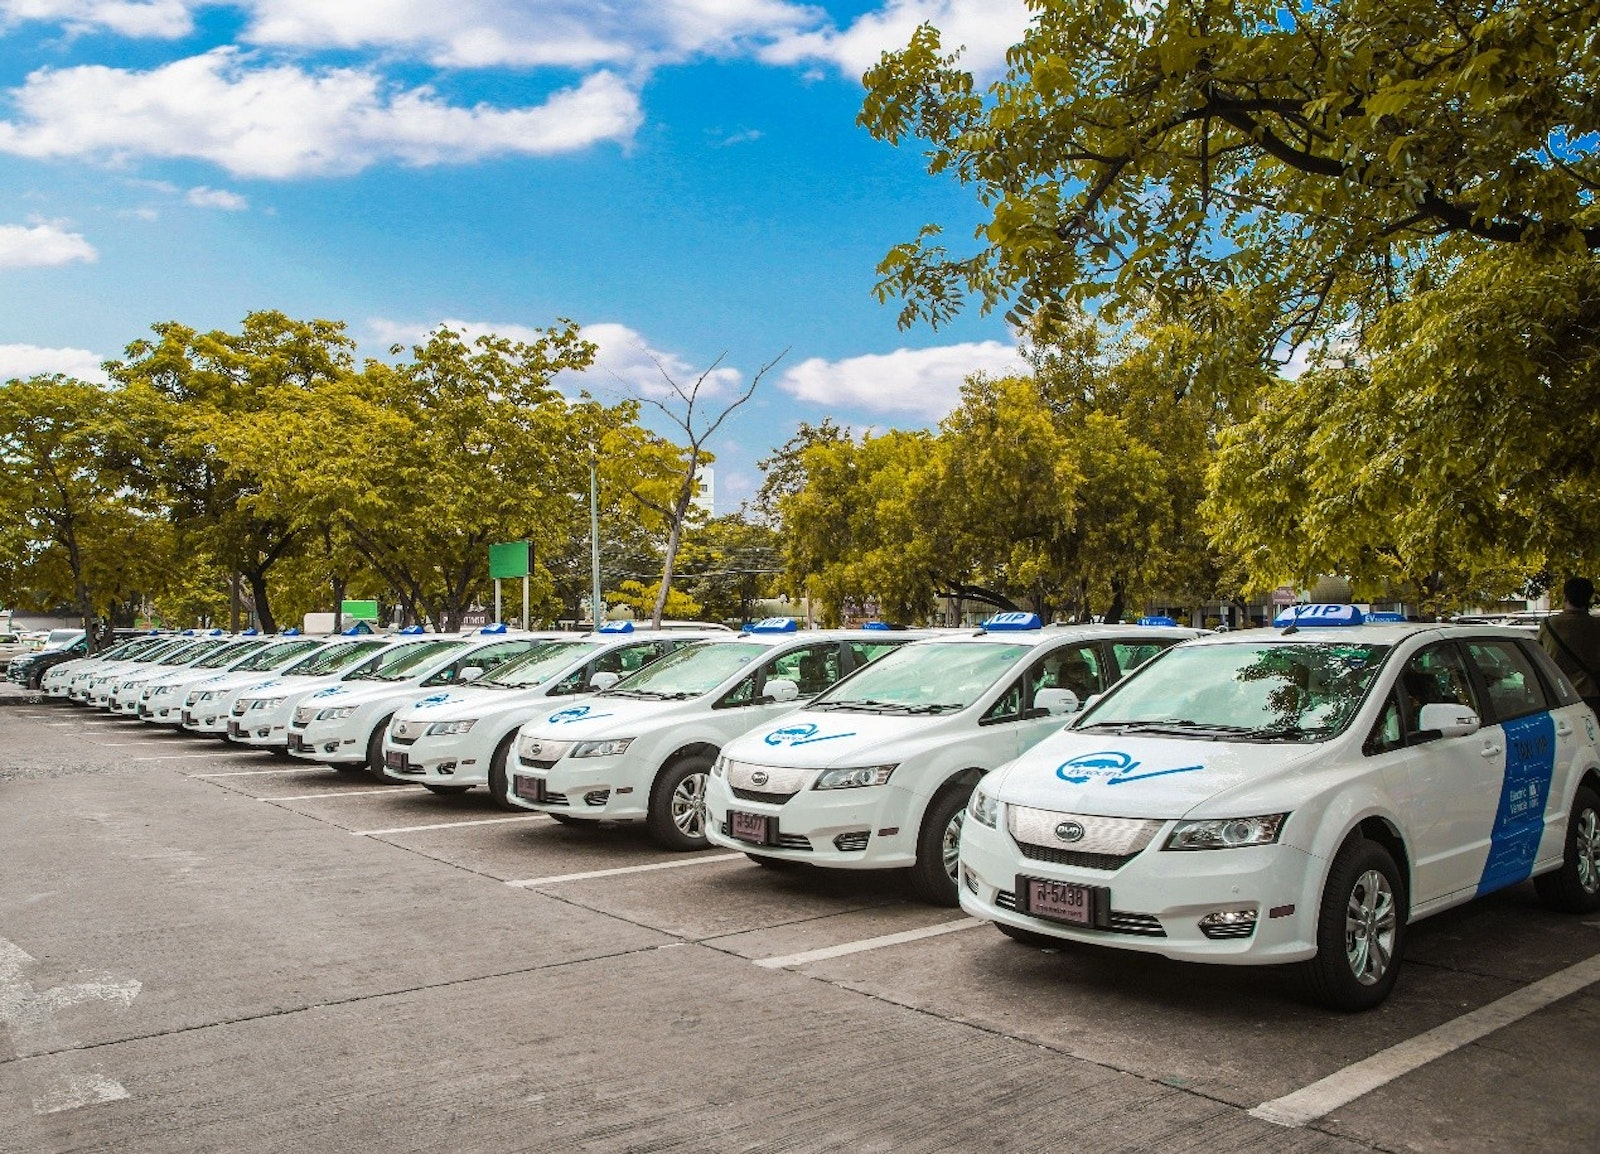 Byd Is Proud To Announce Its Successful Delivery Of 101 Pure Electric E6 Cars Bangkok With Another 1000 More Come The Agreement Thailand